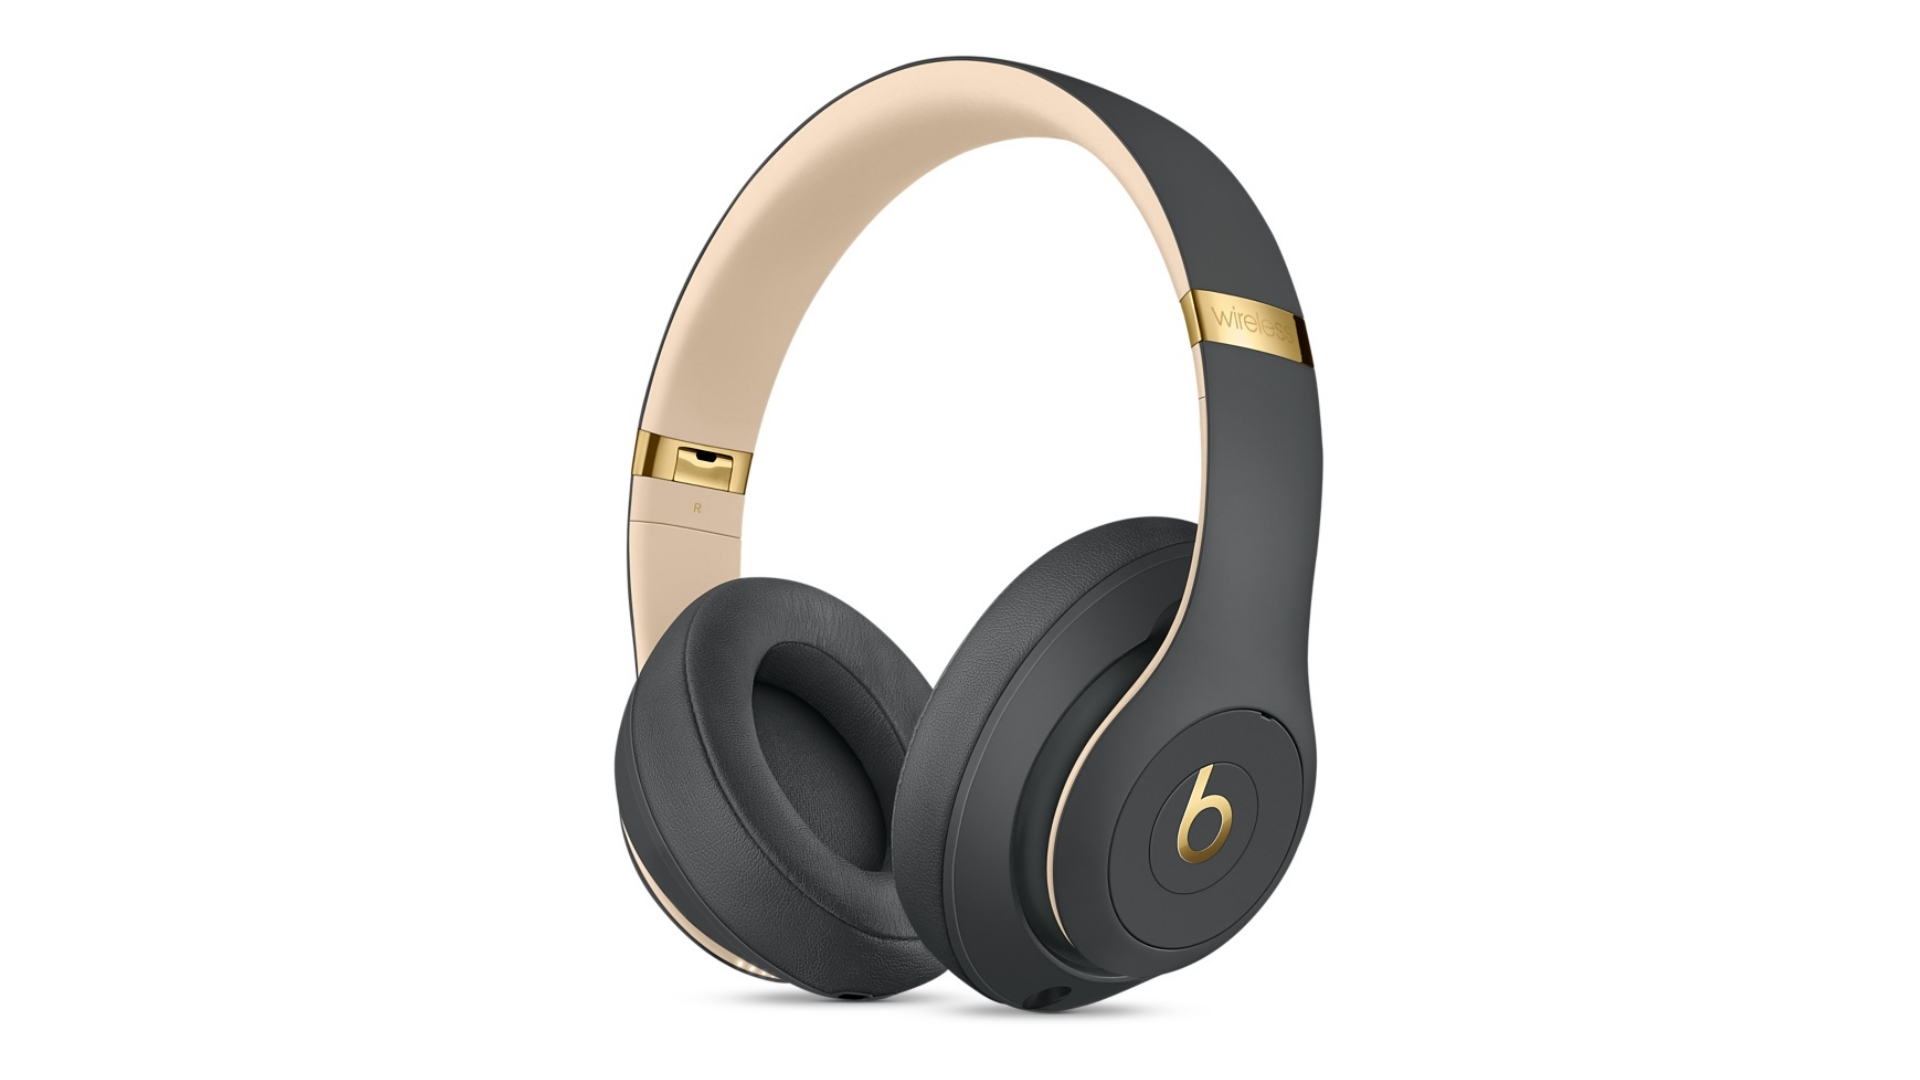 The cheapest Beats headphone prices, sales and deals for Cyber Monday 2018